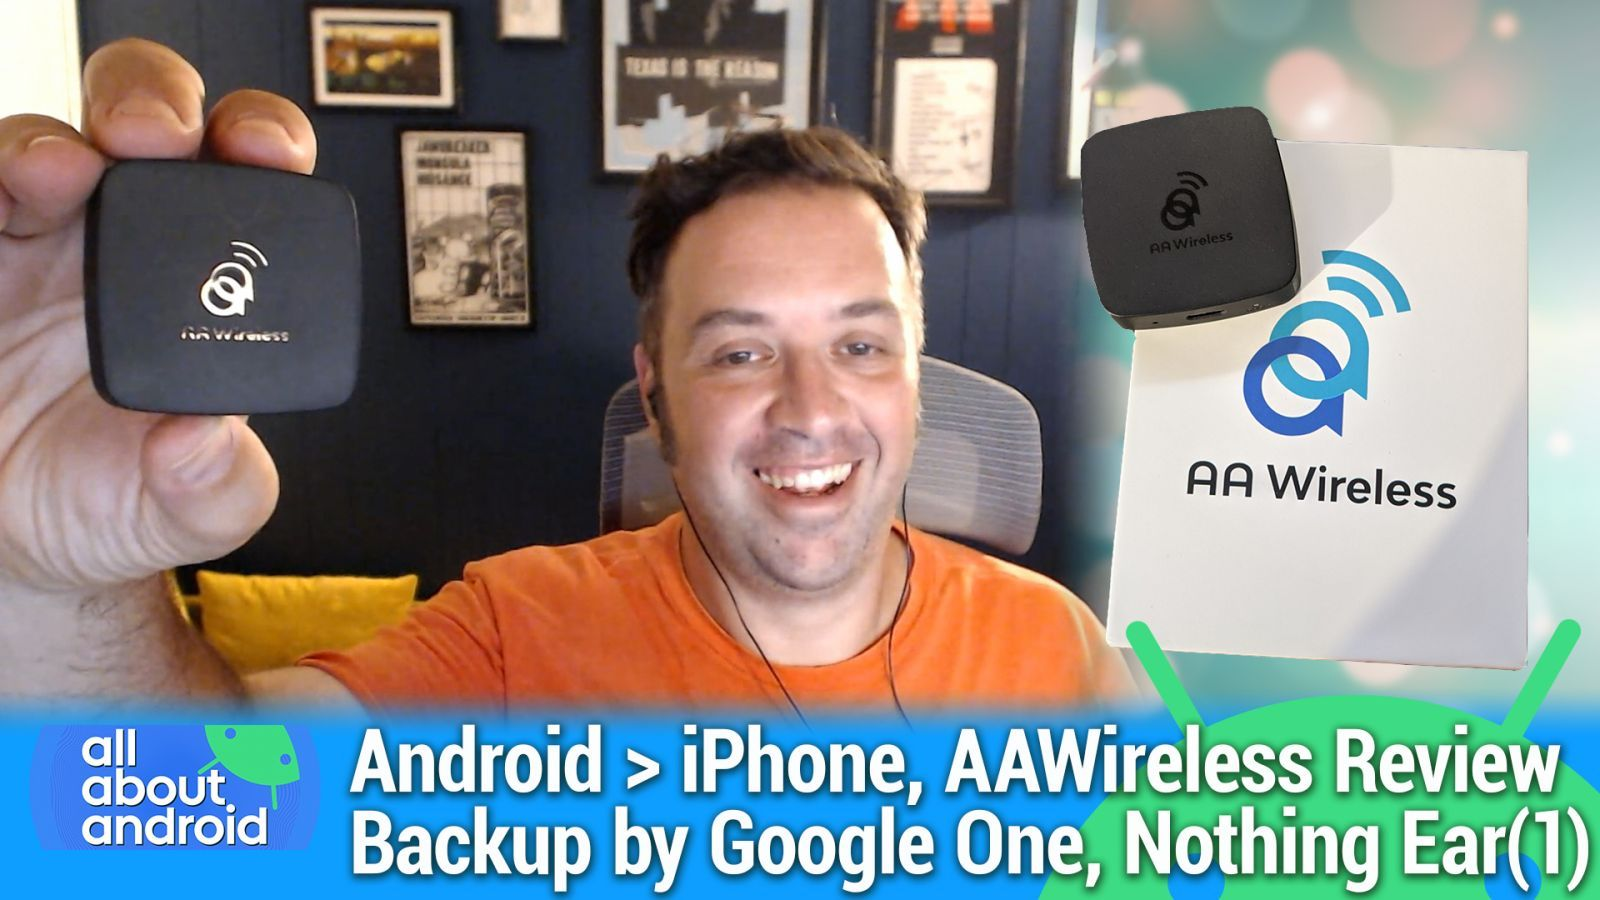 All About Android 535